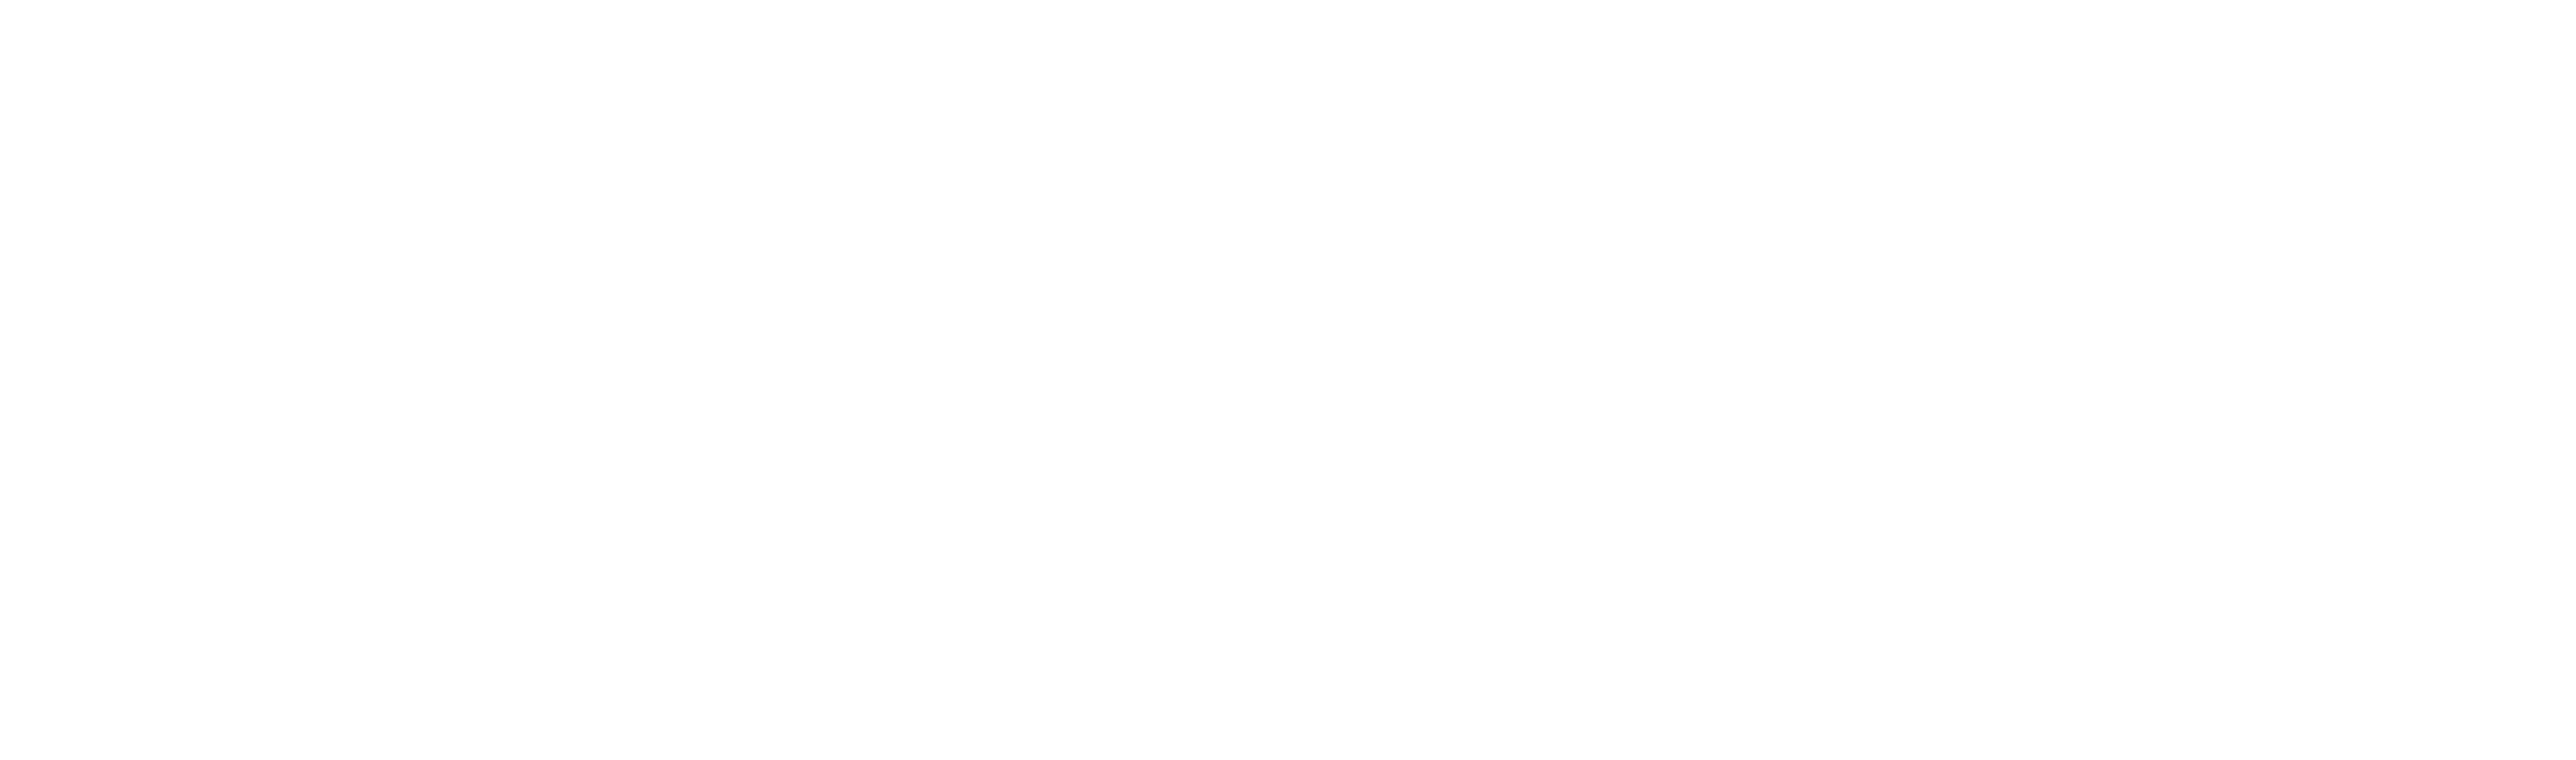 Evolve-Virtual-Summit-Logo-wo-crisp